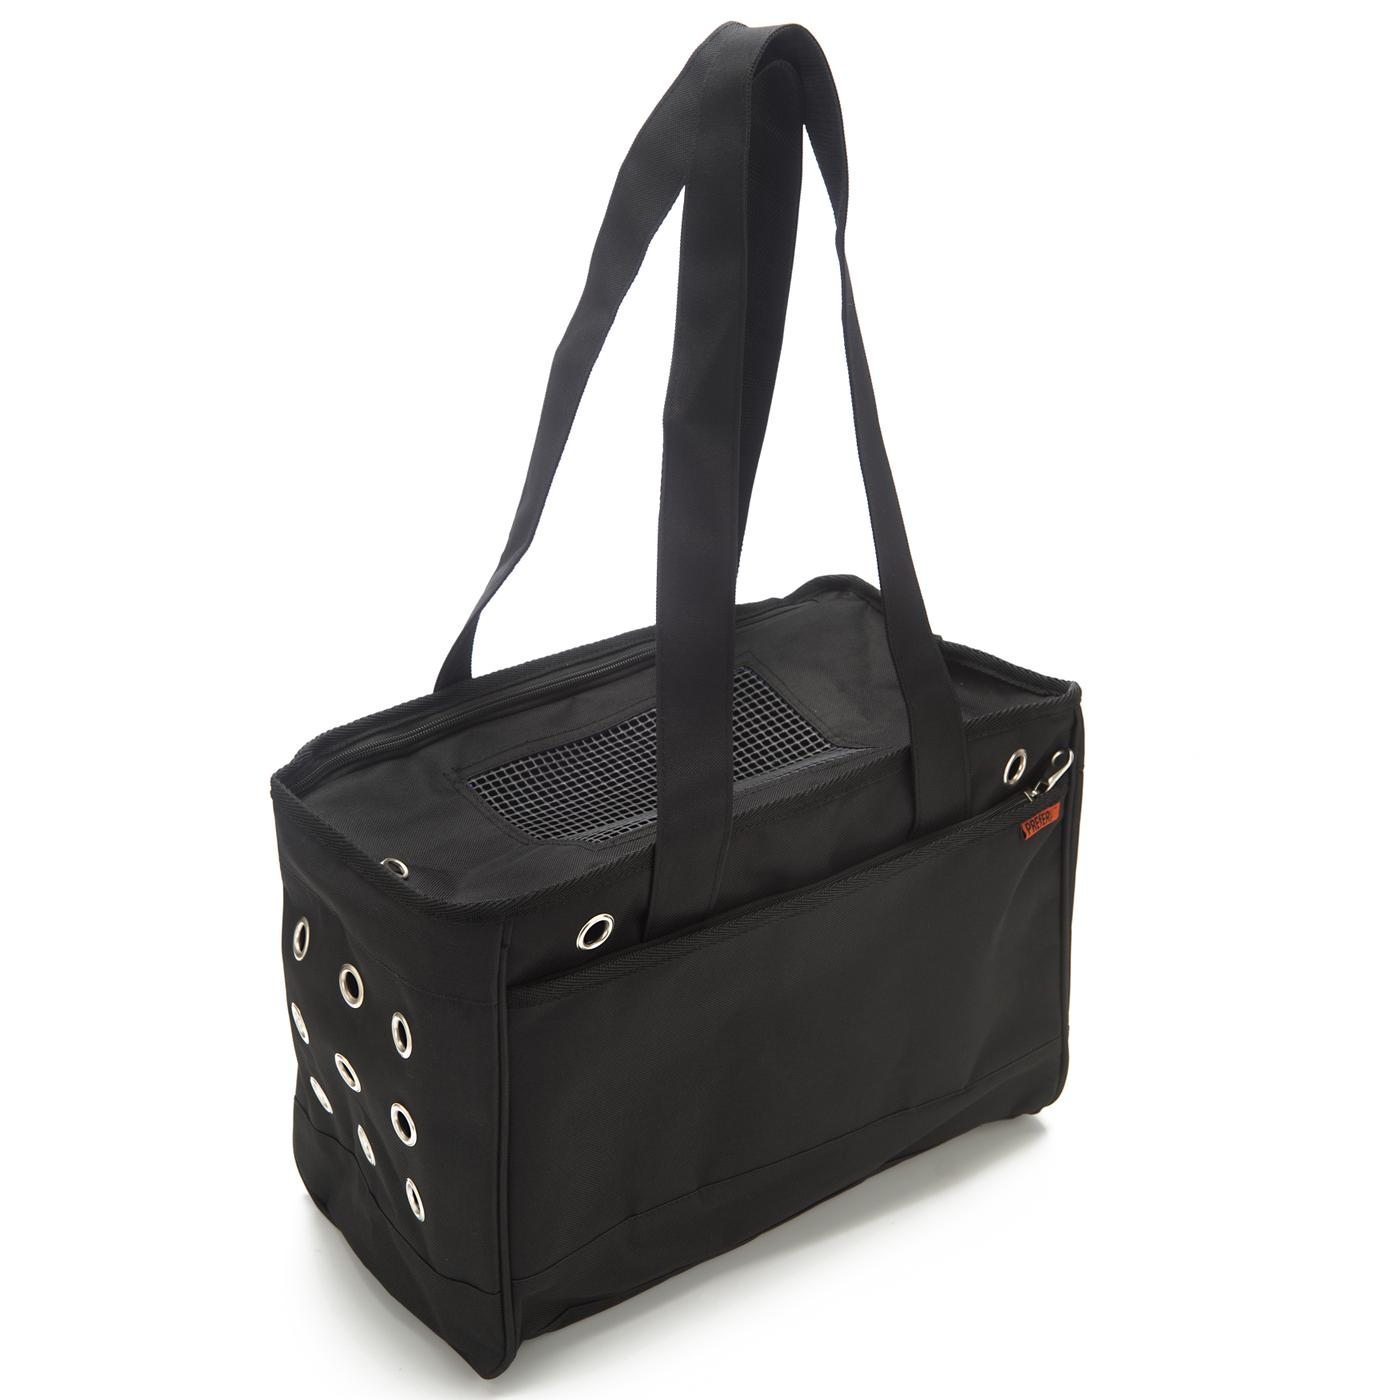 949 Urban Tote Carrier, Black